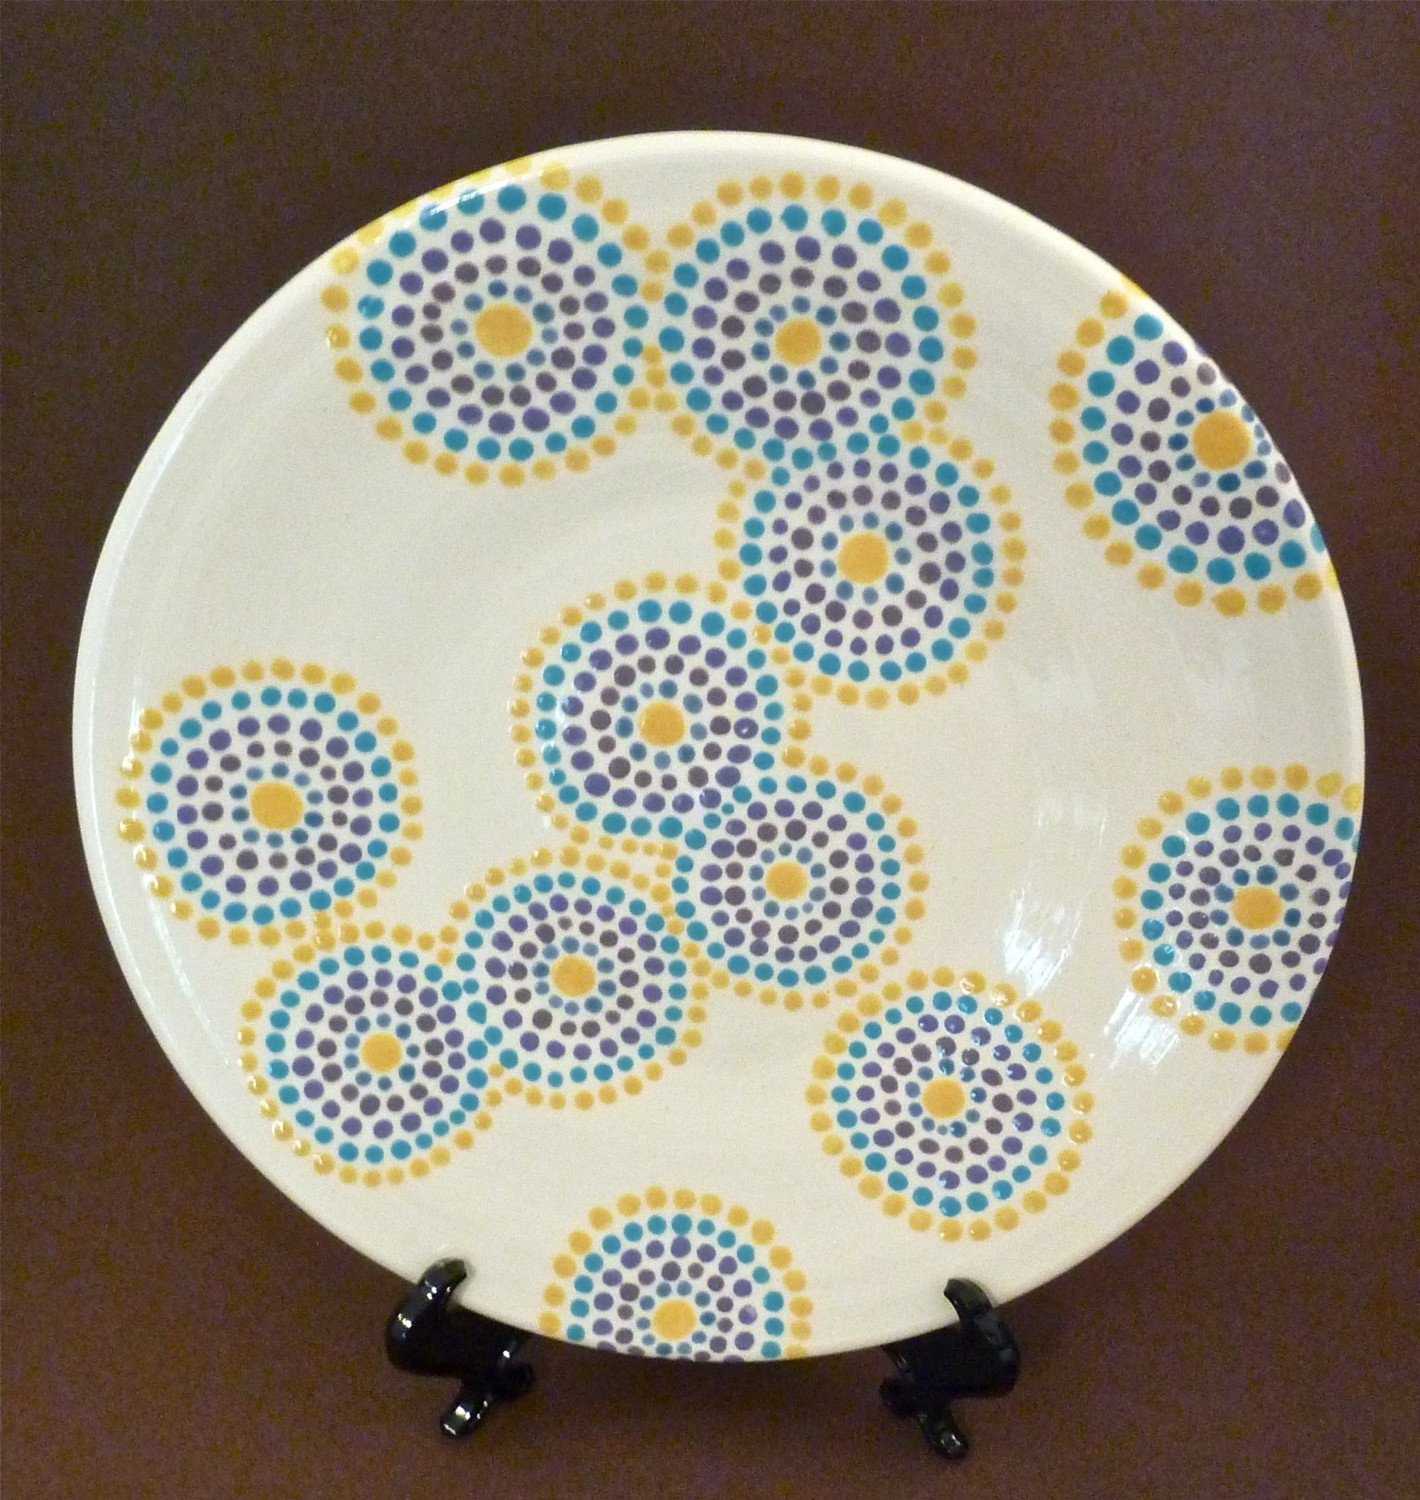 10 Fashionable Paint Your Own Pottery Ideas dotty circles plate pottery pottery ideas and pottery painting 2020